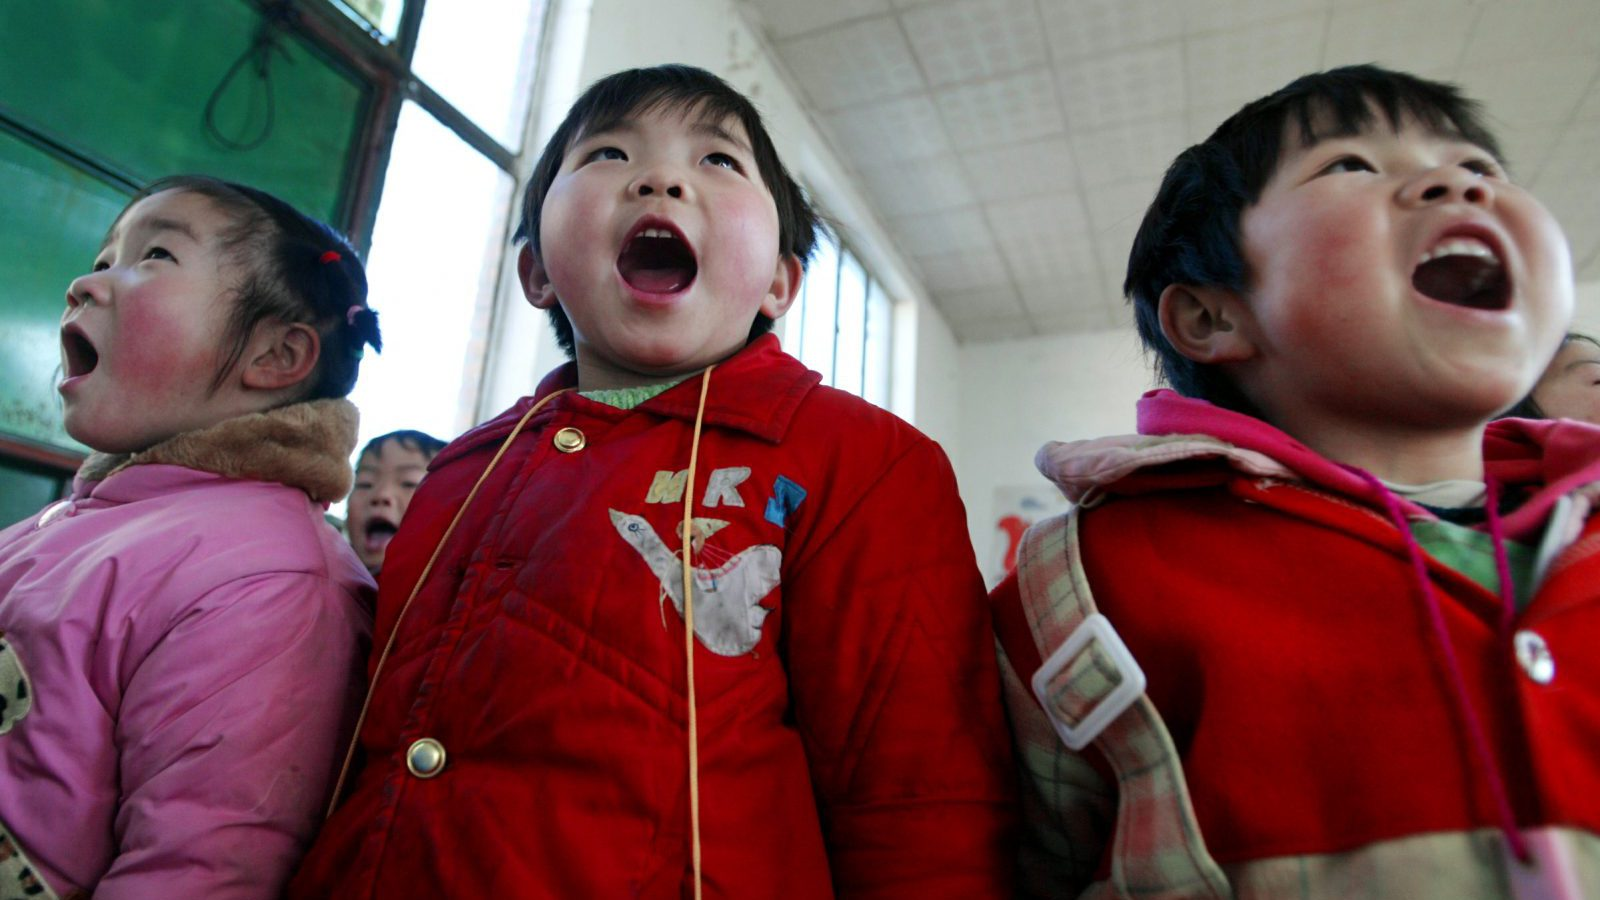 Chinese children sing during a lesson in Xingzhi School which teaches more than 1,200 children of rural immigrants in Beijing.  Chinese children sing during a lesson in Xingzhi School which teaches more than 1,200 children of rural immigrants in Beijing March 2, 2005. By the end of 2004, 93.6 percent of Chinese children were receiving nine years of compulsory education, China's official news agency Xinhua reported.